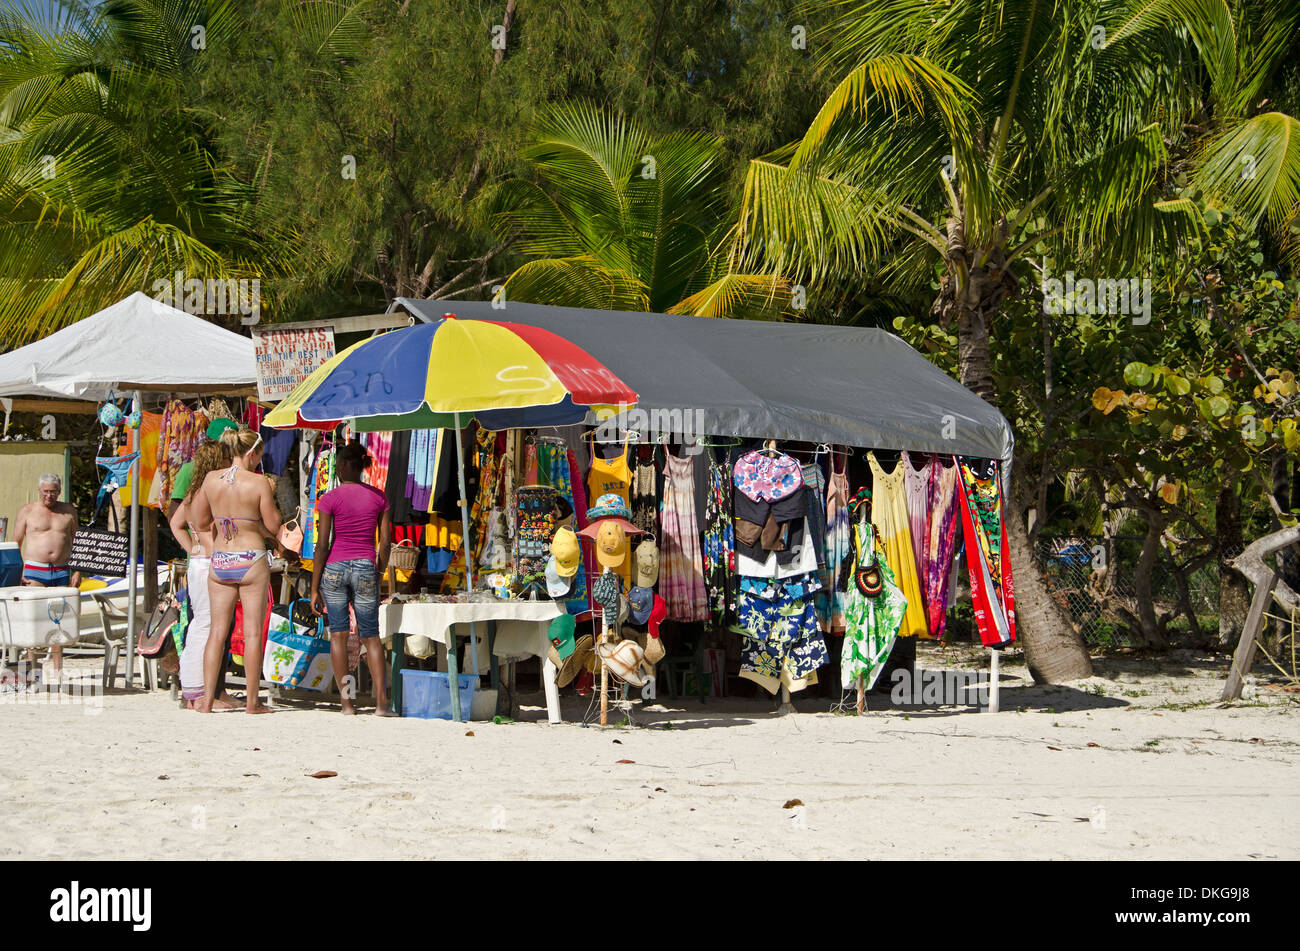 Market stall at beach, Jolly Beach, Antigua, Lesser Antilles, the Caribbean, America - Stock Image